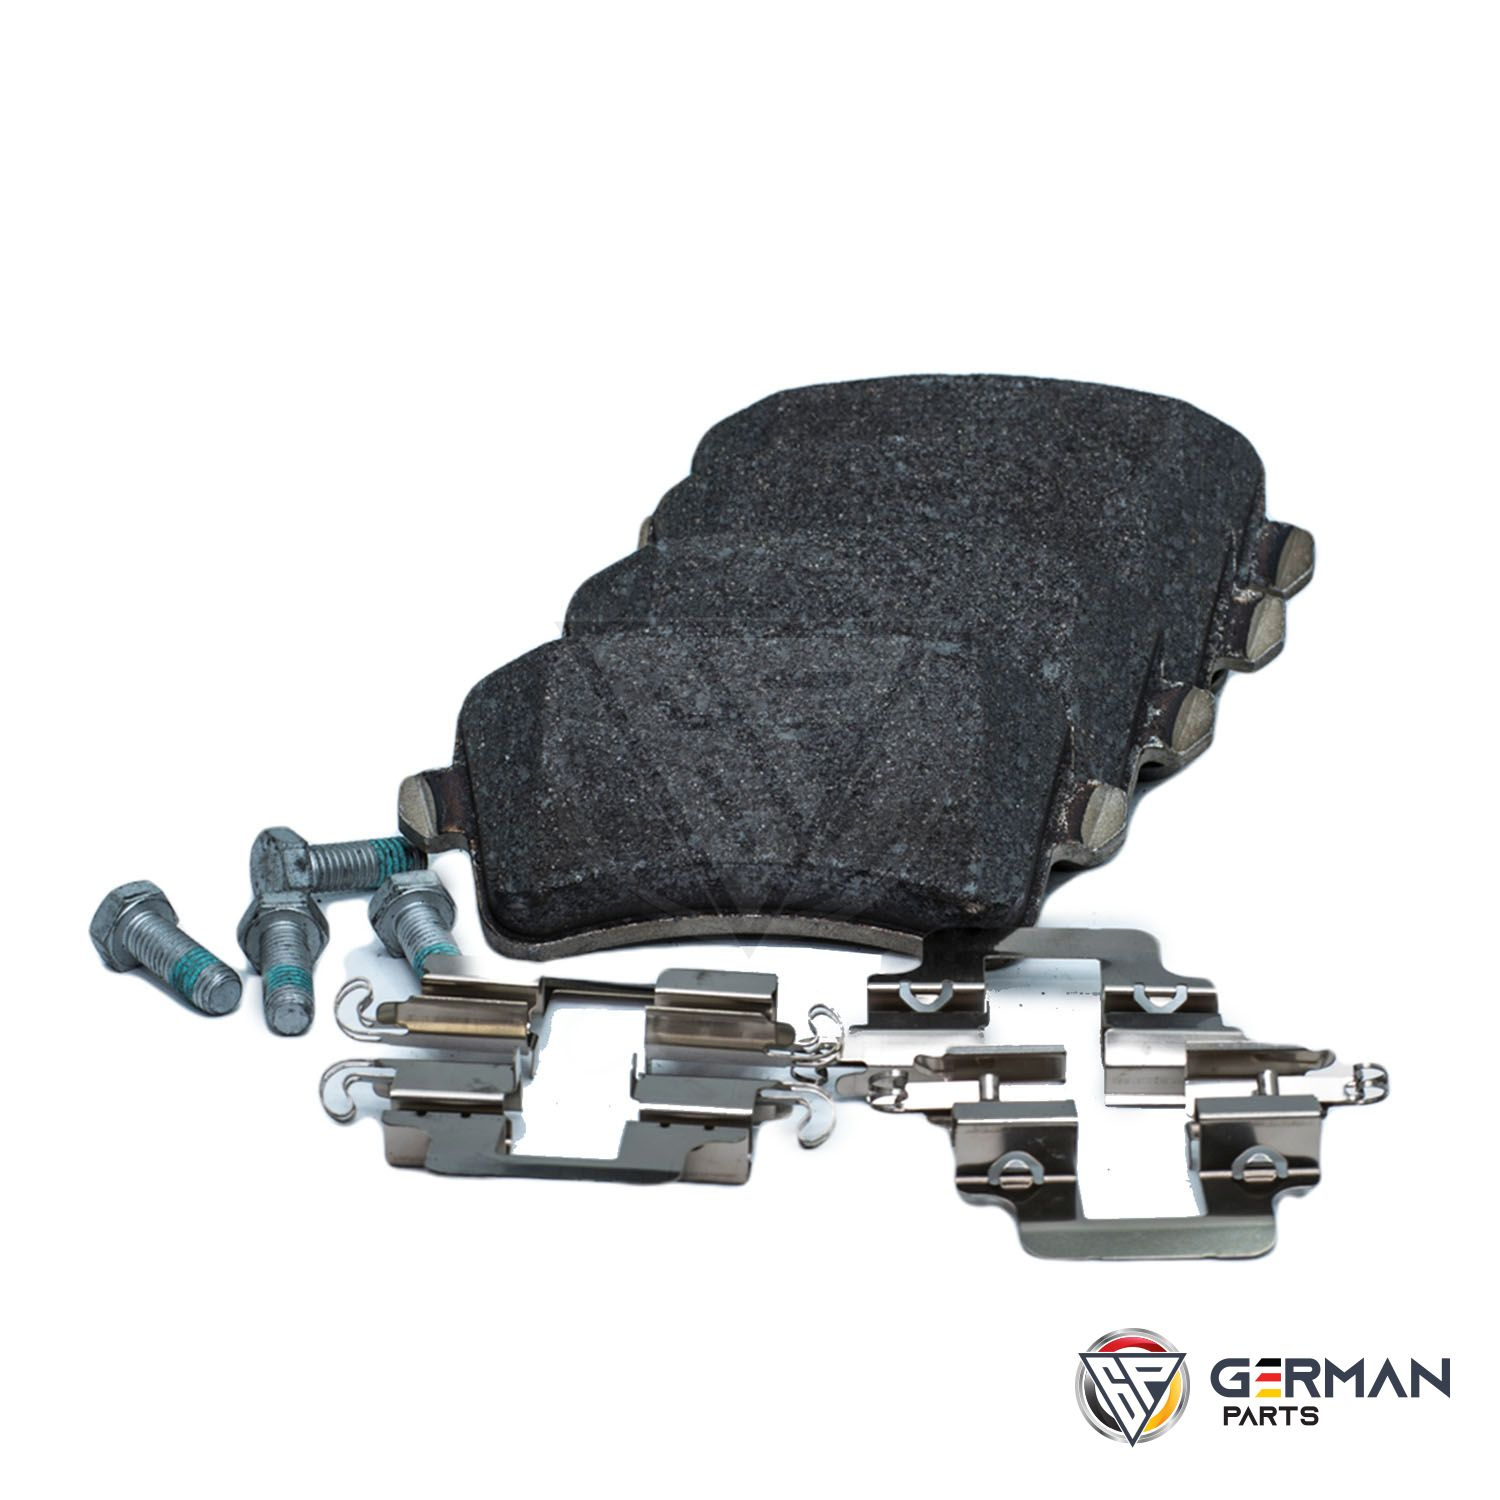 Buy Genuine Audi/Volkswagen Rear Brake Pad Set 8K0698451A - German Parts